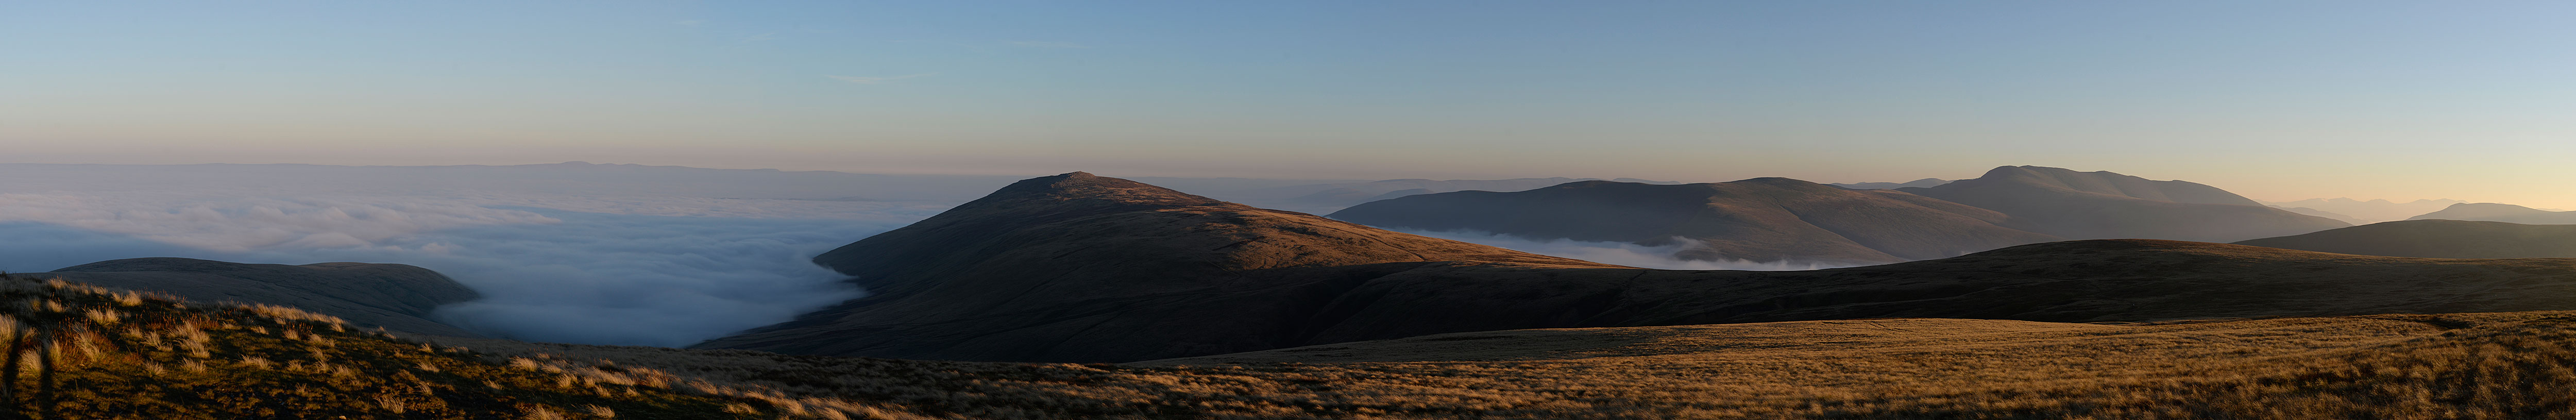 Autumn 2015 saw a week of perfect conditions for this eyecatching phenomenon. This is a view looking fro east to south west, showing West Fell, Carrock Fell, Blencathra and Skiddaw.Stitch of six images. Nikon D610, 50mm